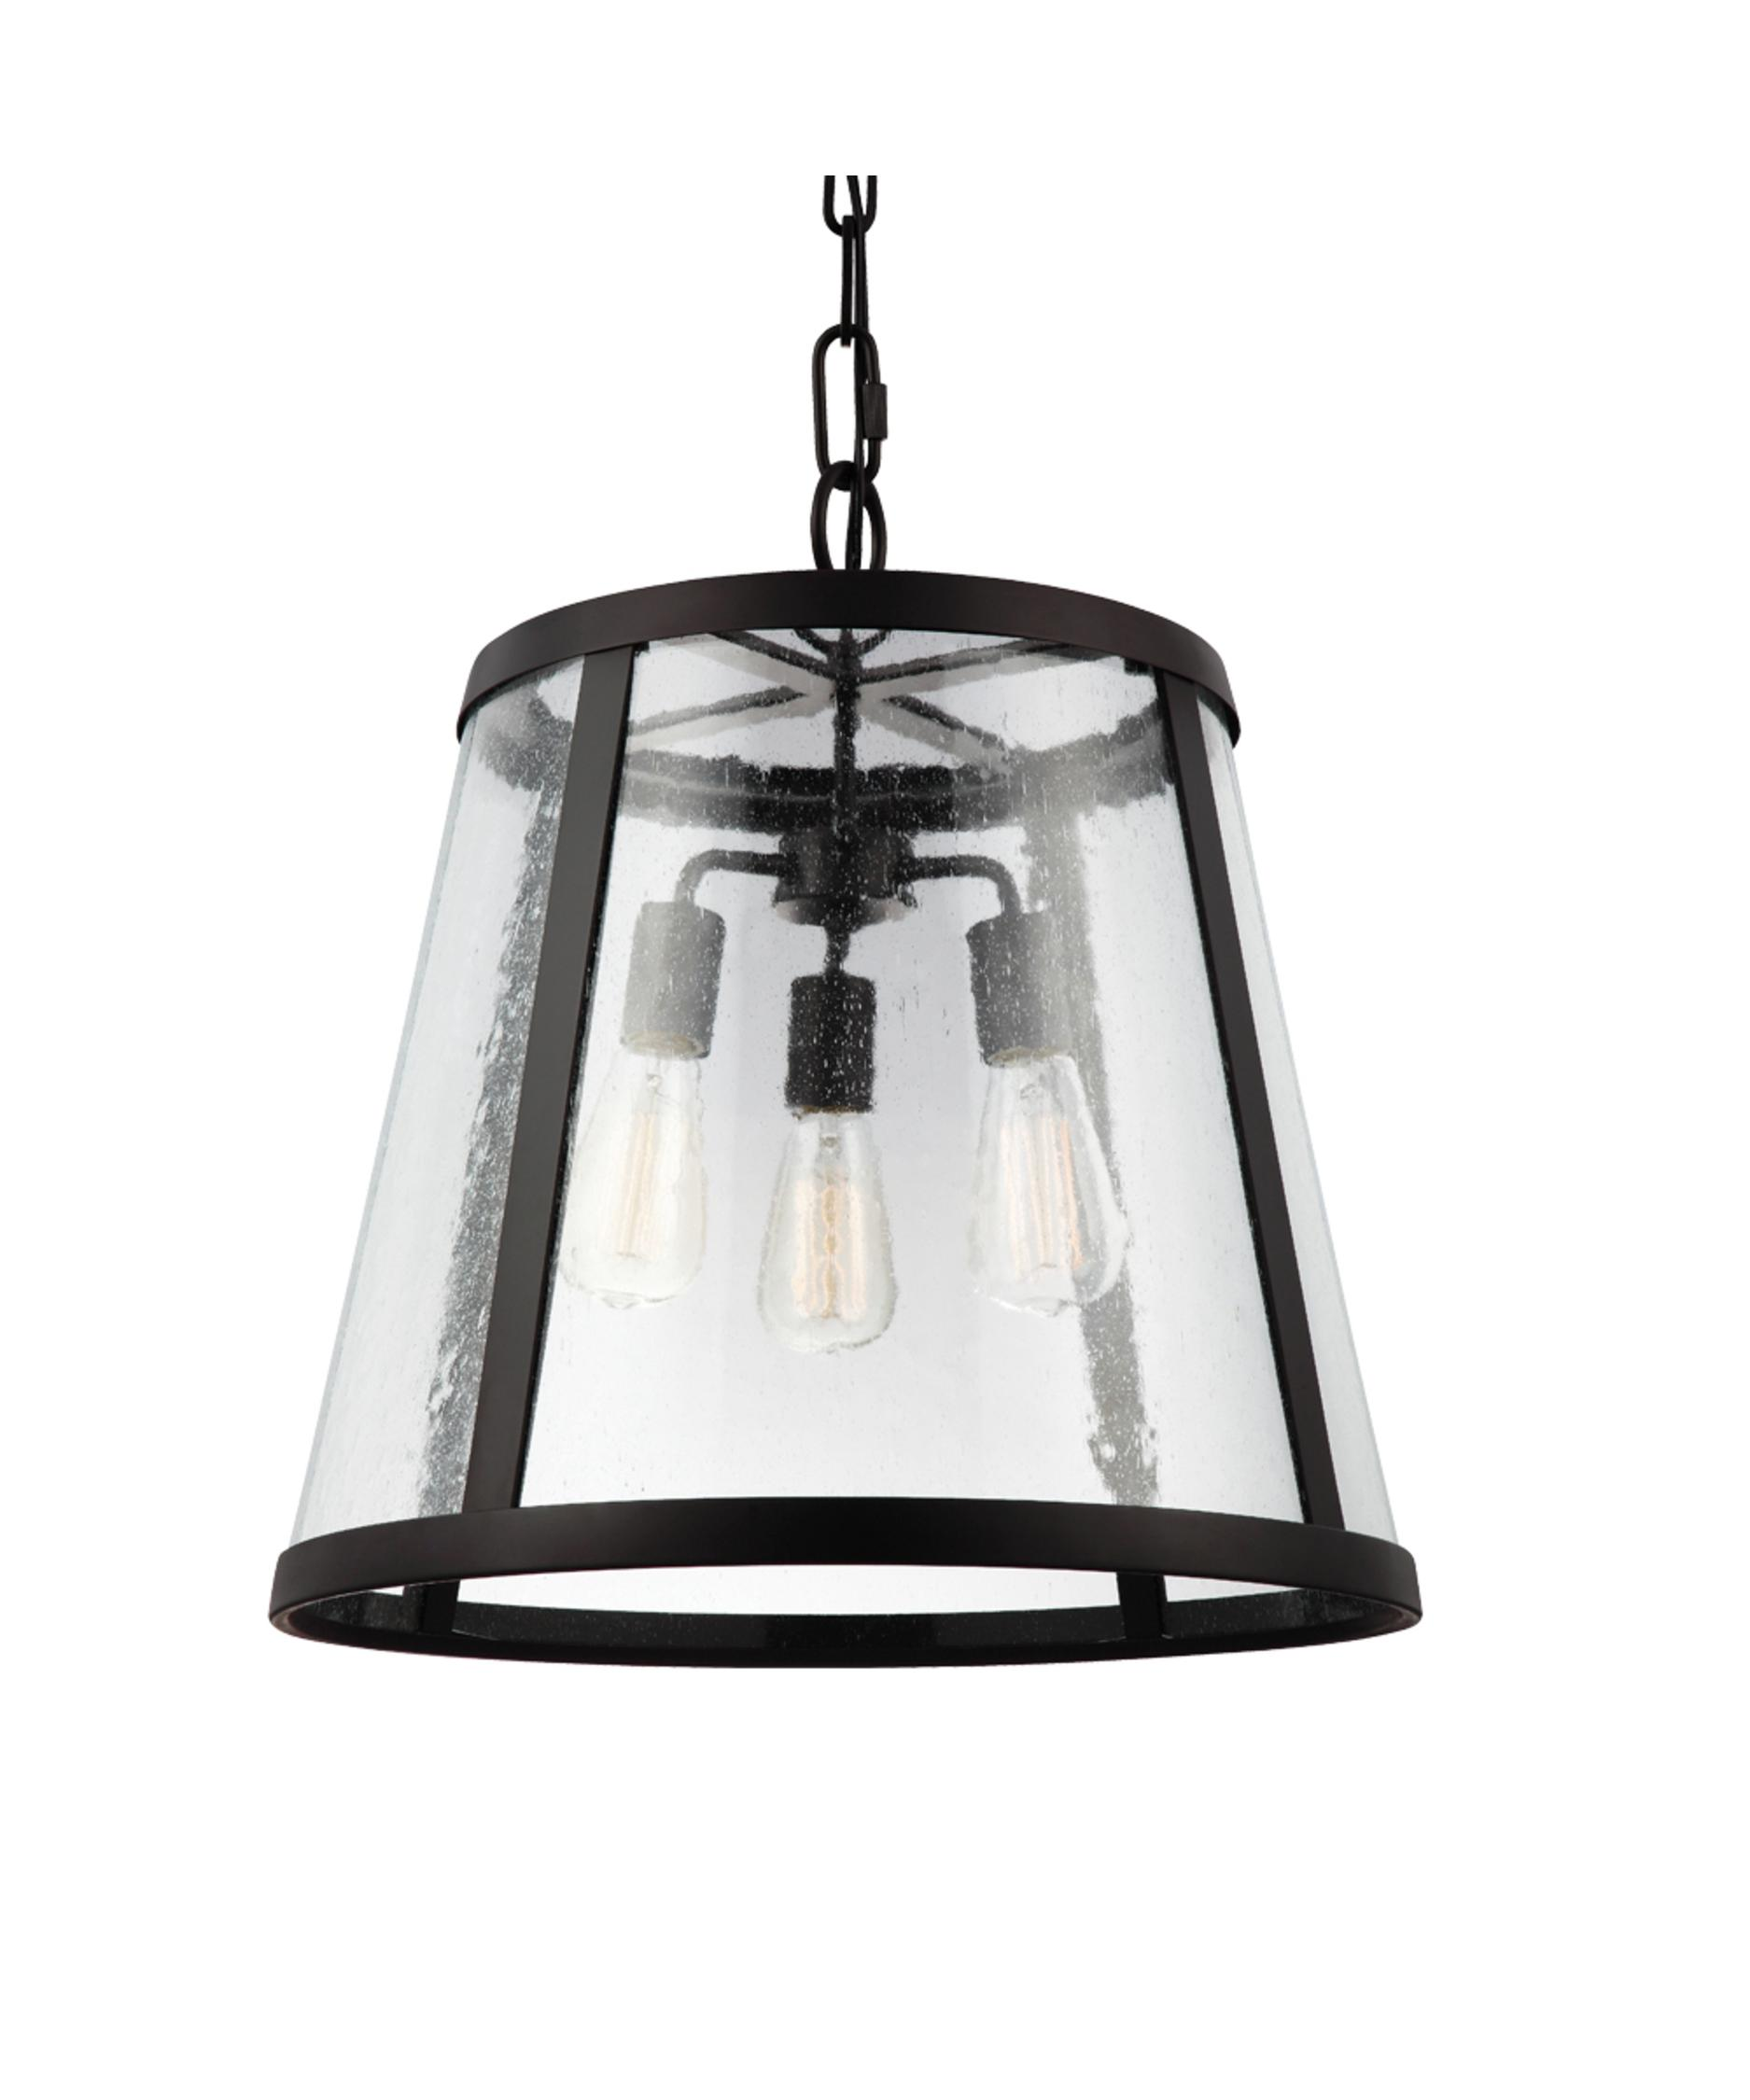 Murray Feiss Semi Flush Ceiling Light | Murray Feiss | Feis Lighting